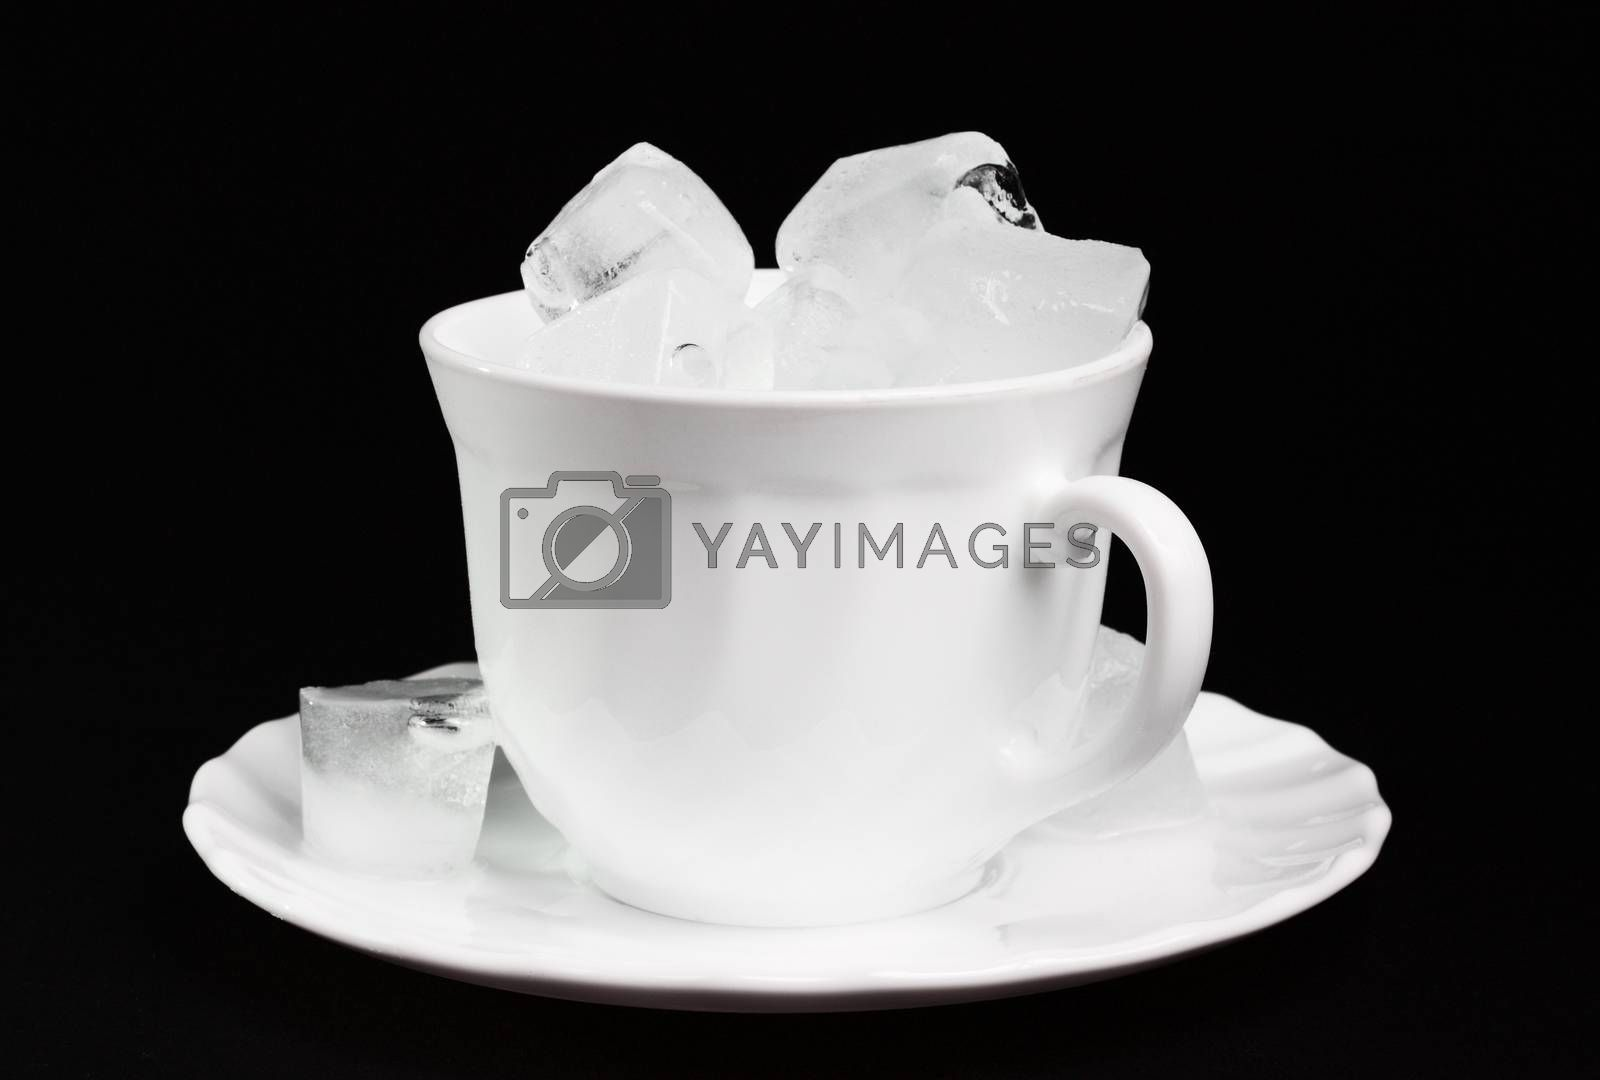 Ice cubes inside a cup at the dark background